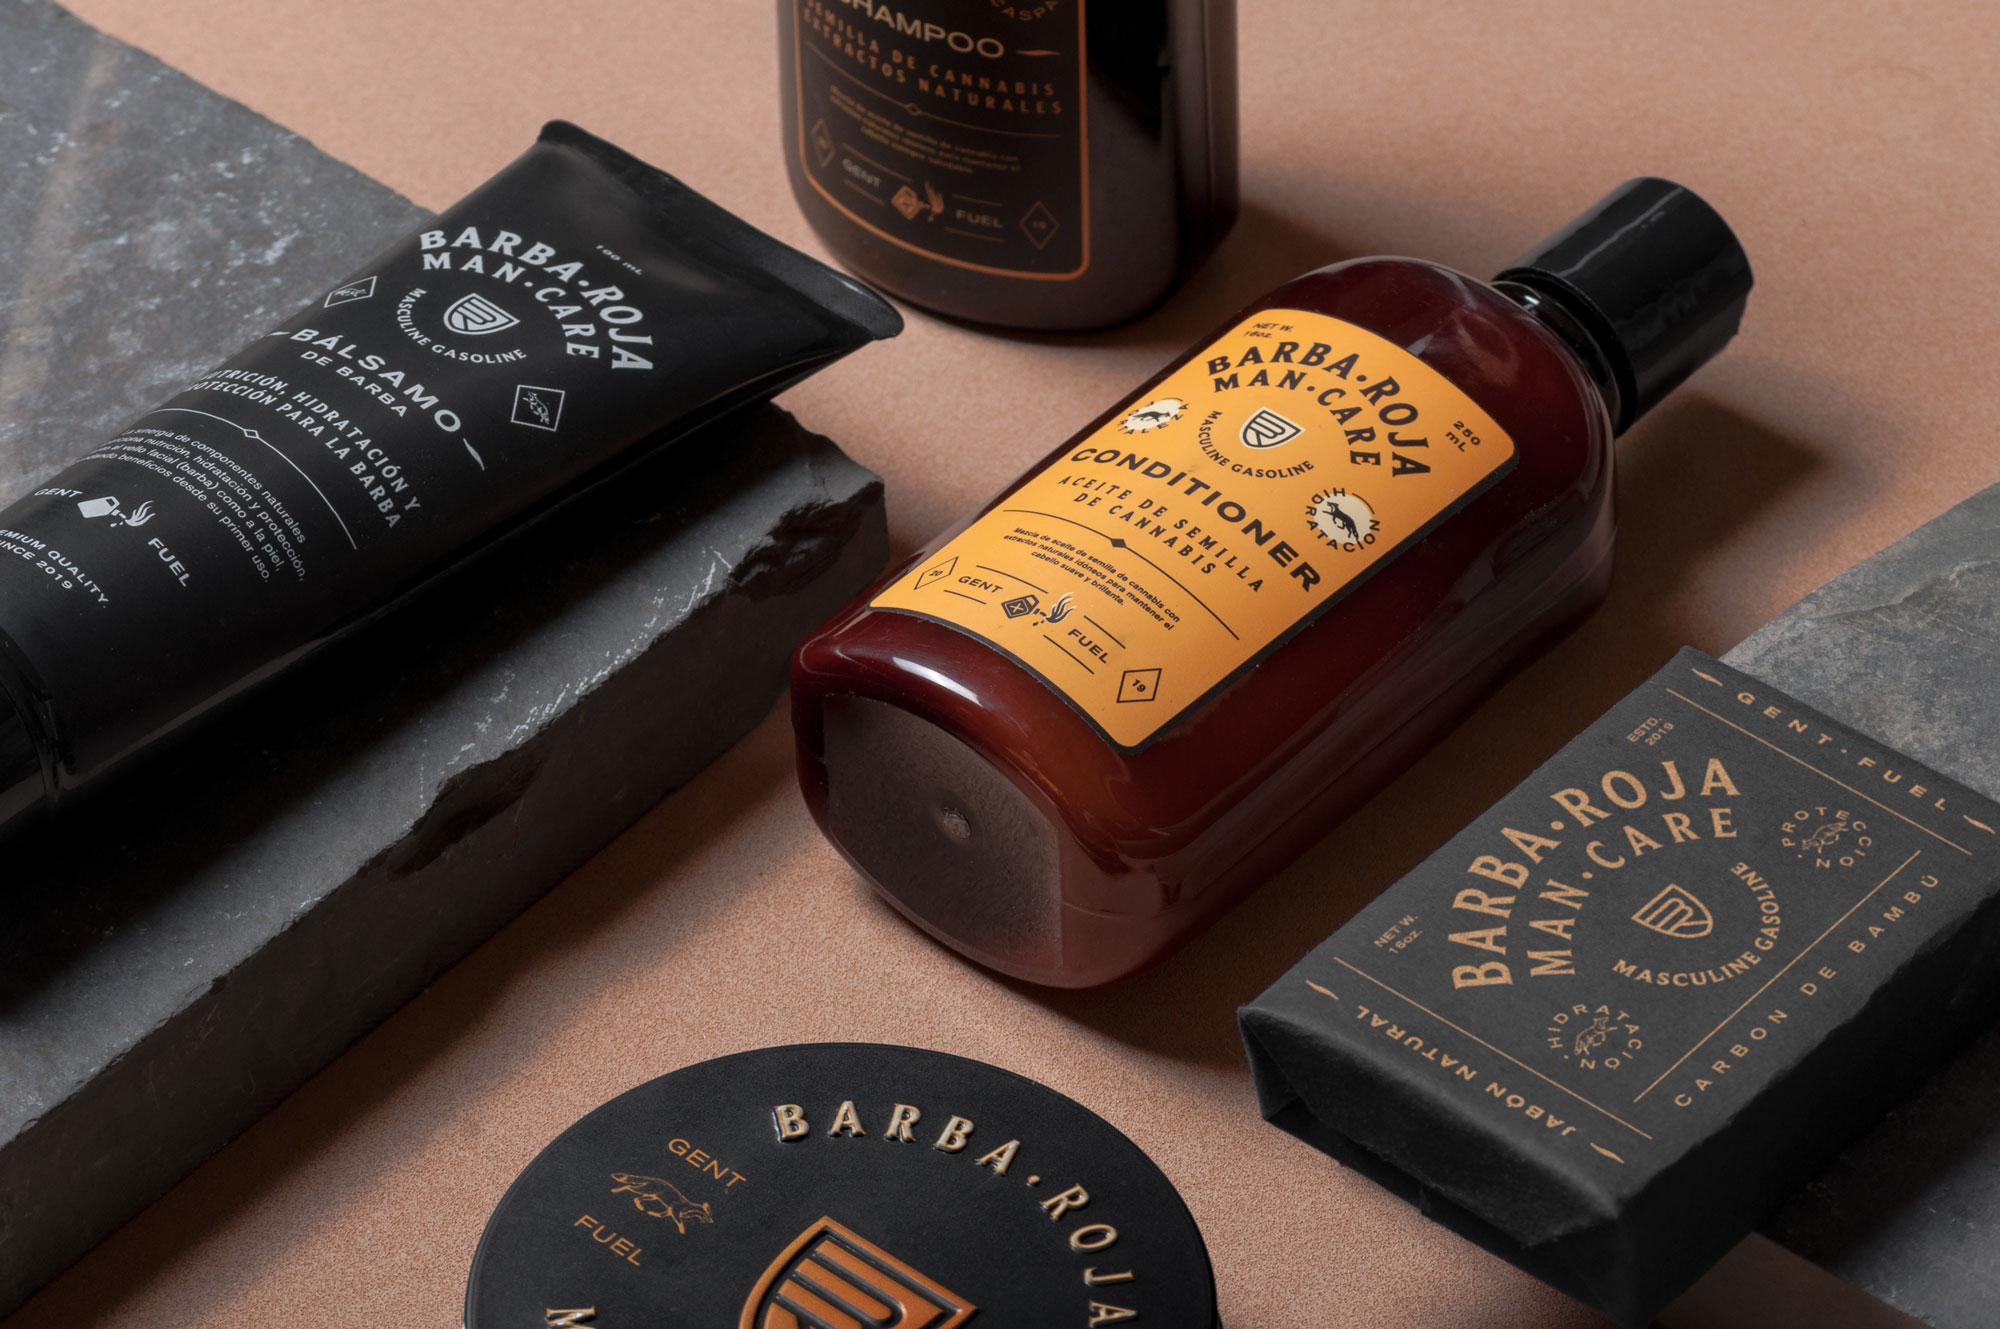 Branding Development and Packaging Design for Barba Roja Man